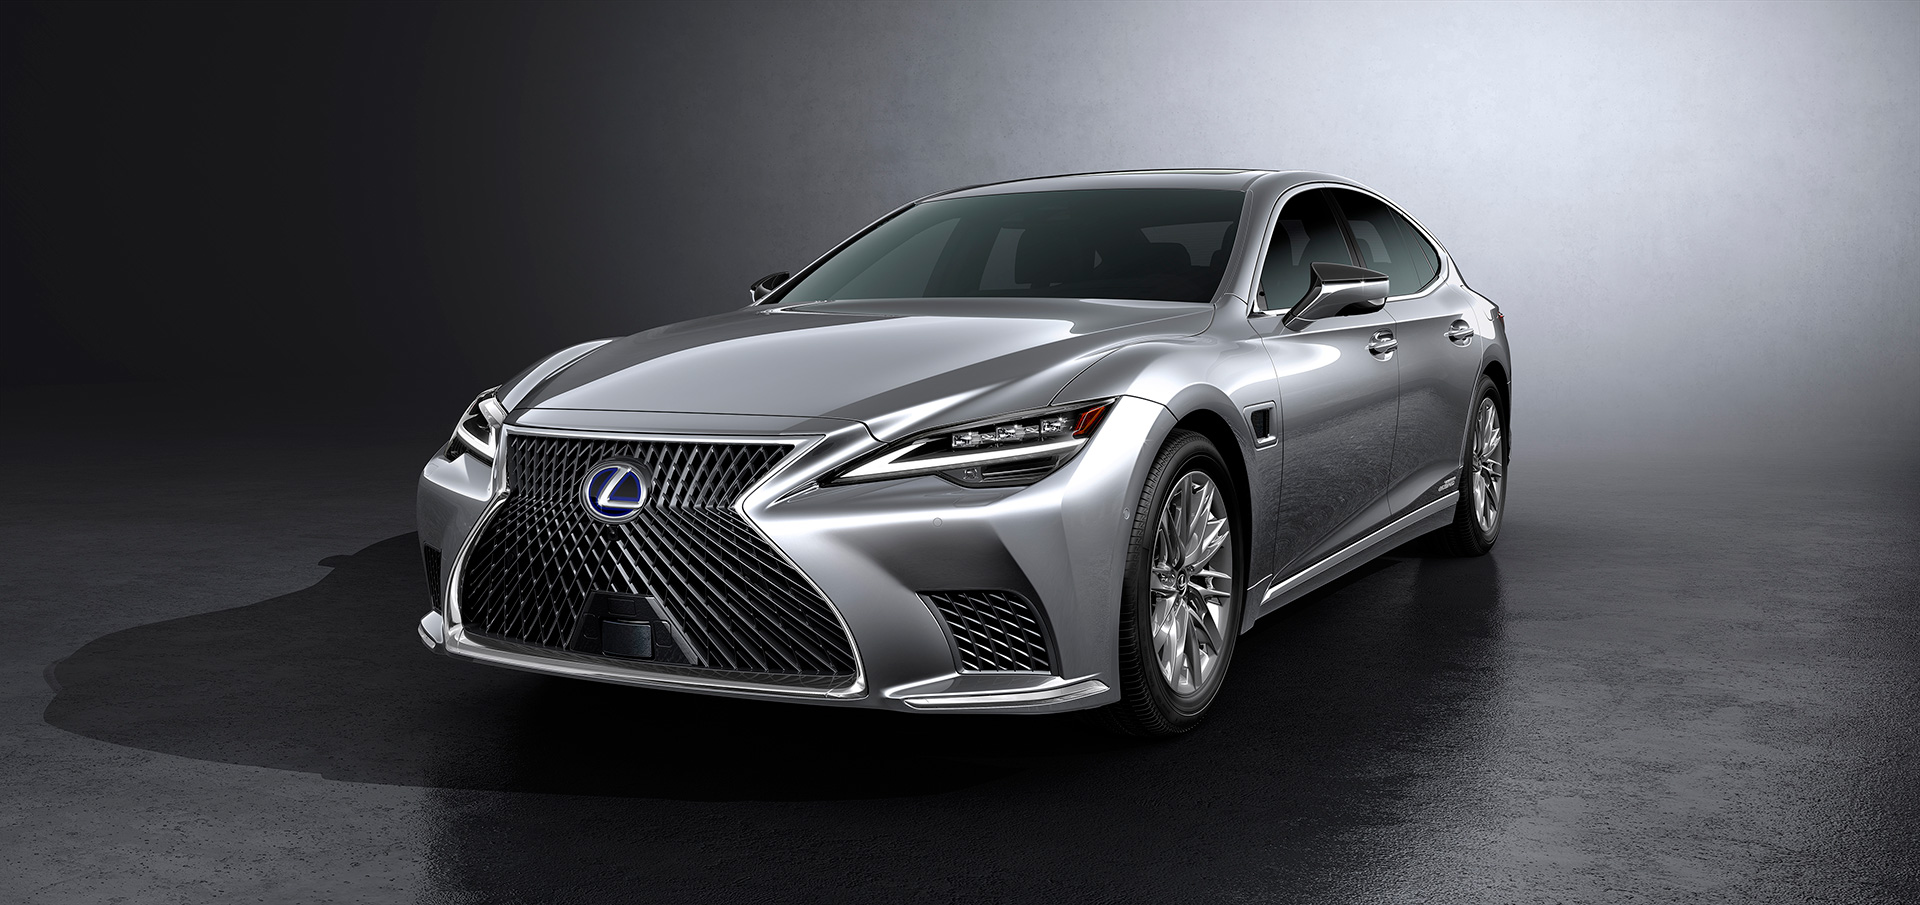 Lexus Premieres New LSContinuing the relentless evolution of a brand flagship, and introducing Lexus Teammate―the latest in advanced driving assist technologies - Image 7